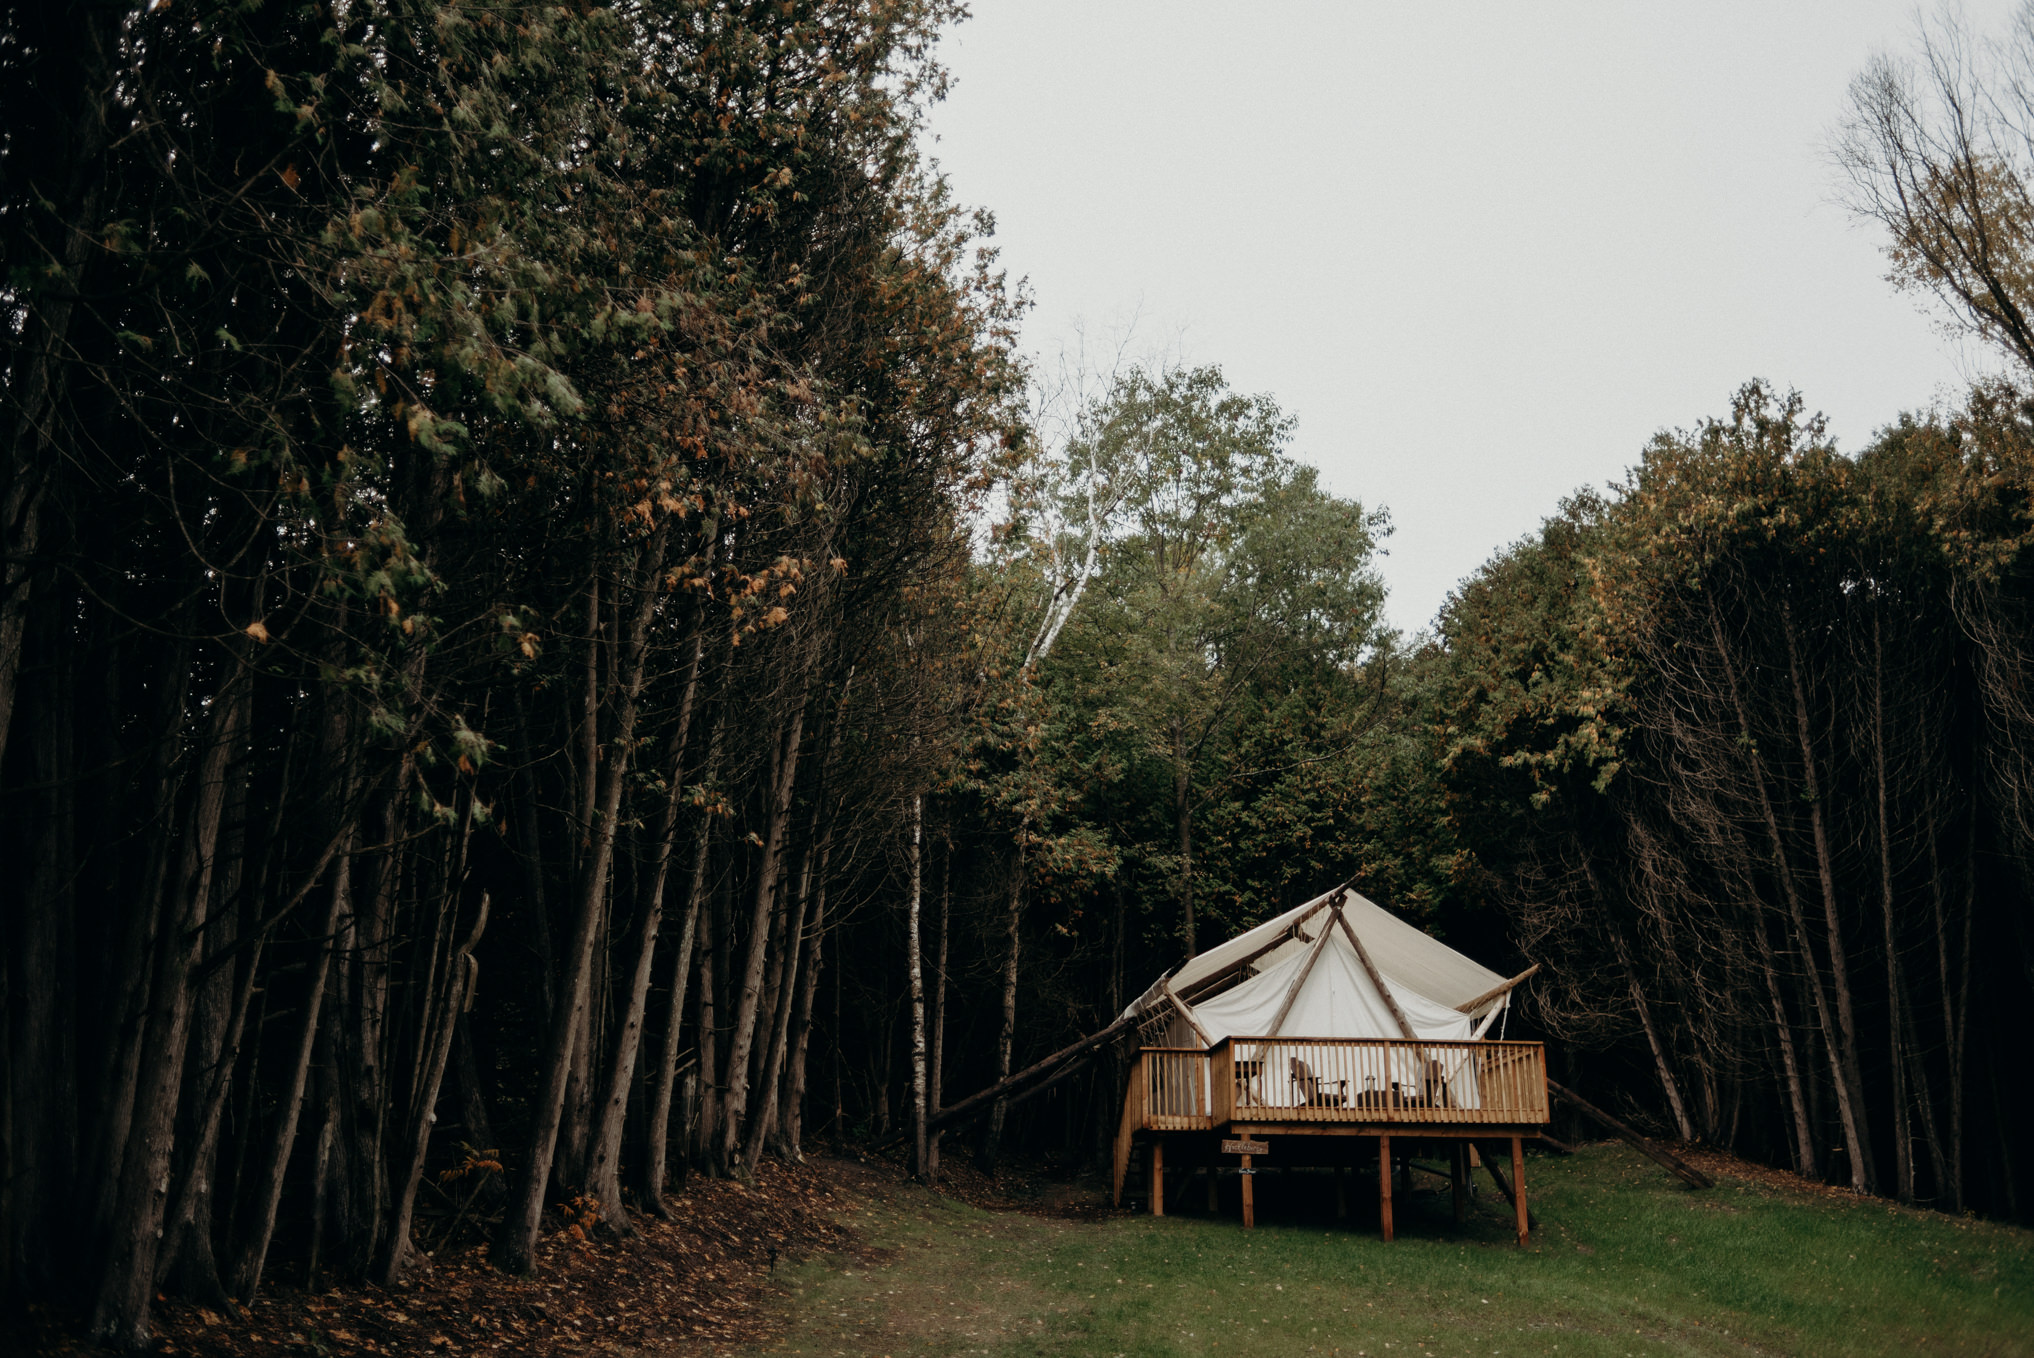 Luxury glamping tent in the woods